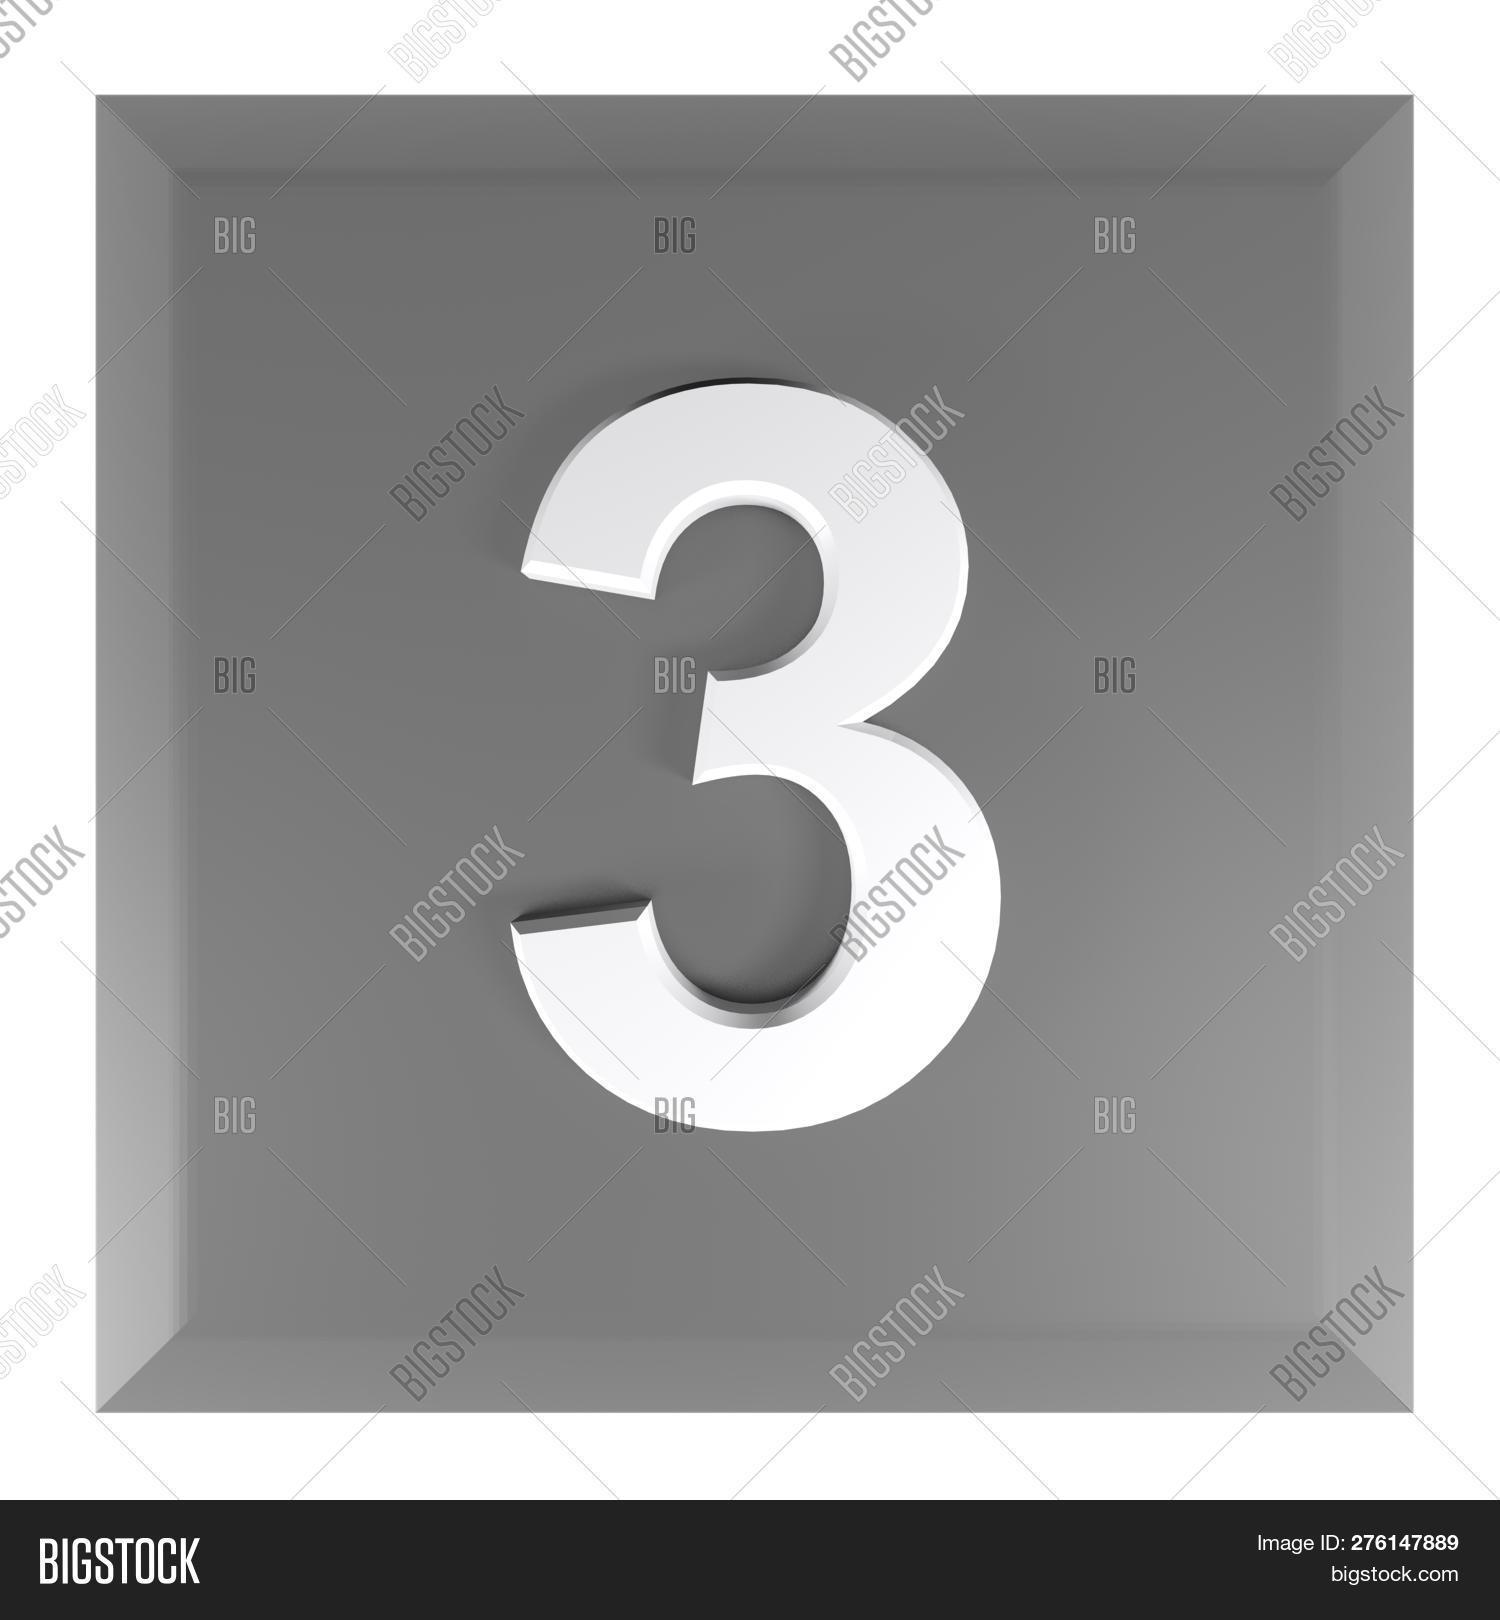 3,3D,algebra,black,button,count,counter,design,digit,glossy,graphic,icon,illustration,keyboard,keypad,math,mathematics,modern,number,numeric,push,quantity,reflections,rendering,sign,square,symbol,third,three,white